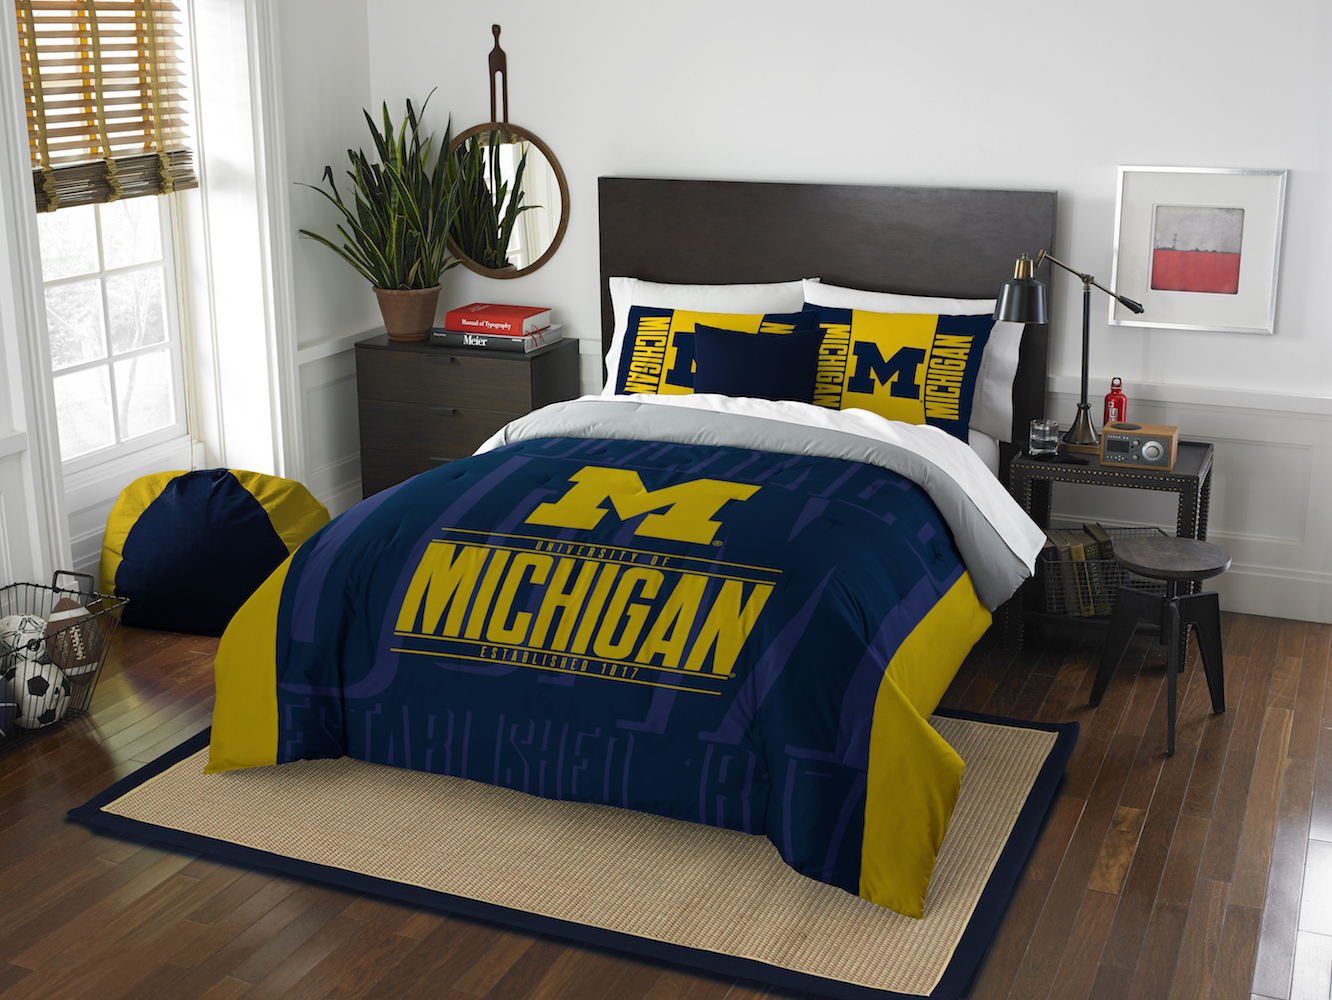 Michigan Wolverines QUEEN/FULL size Comforter and 2 Shams